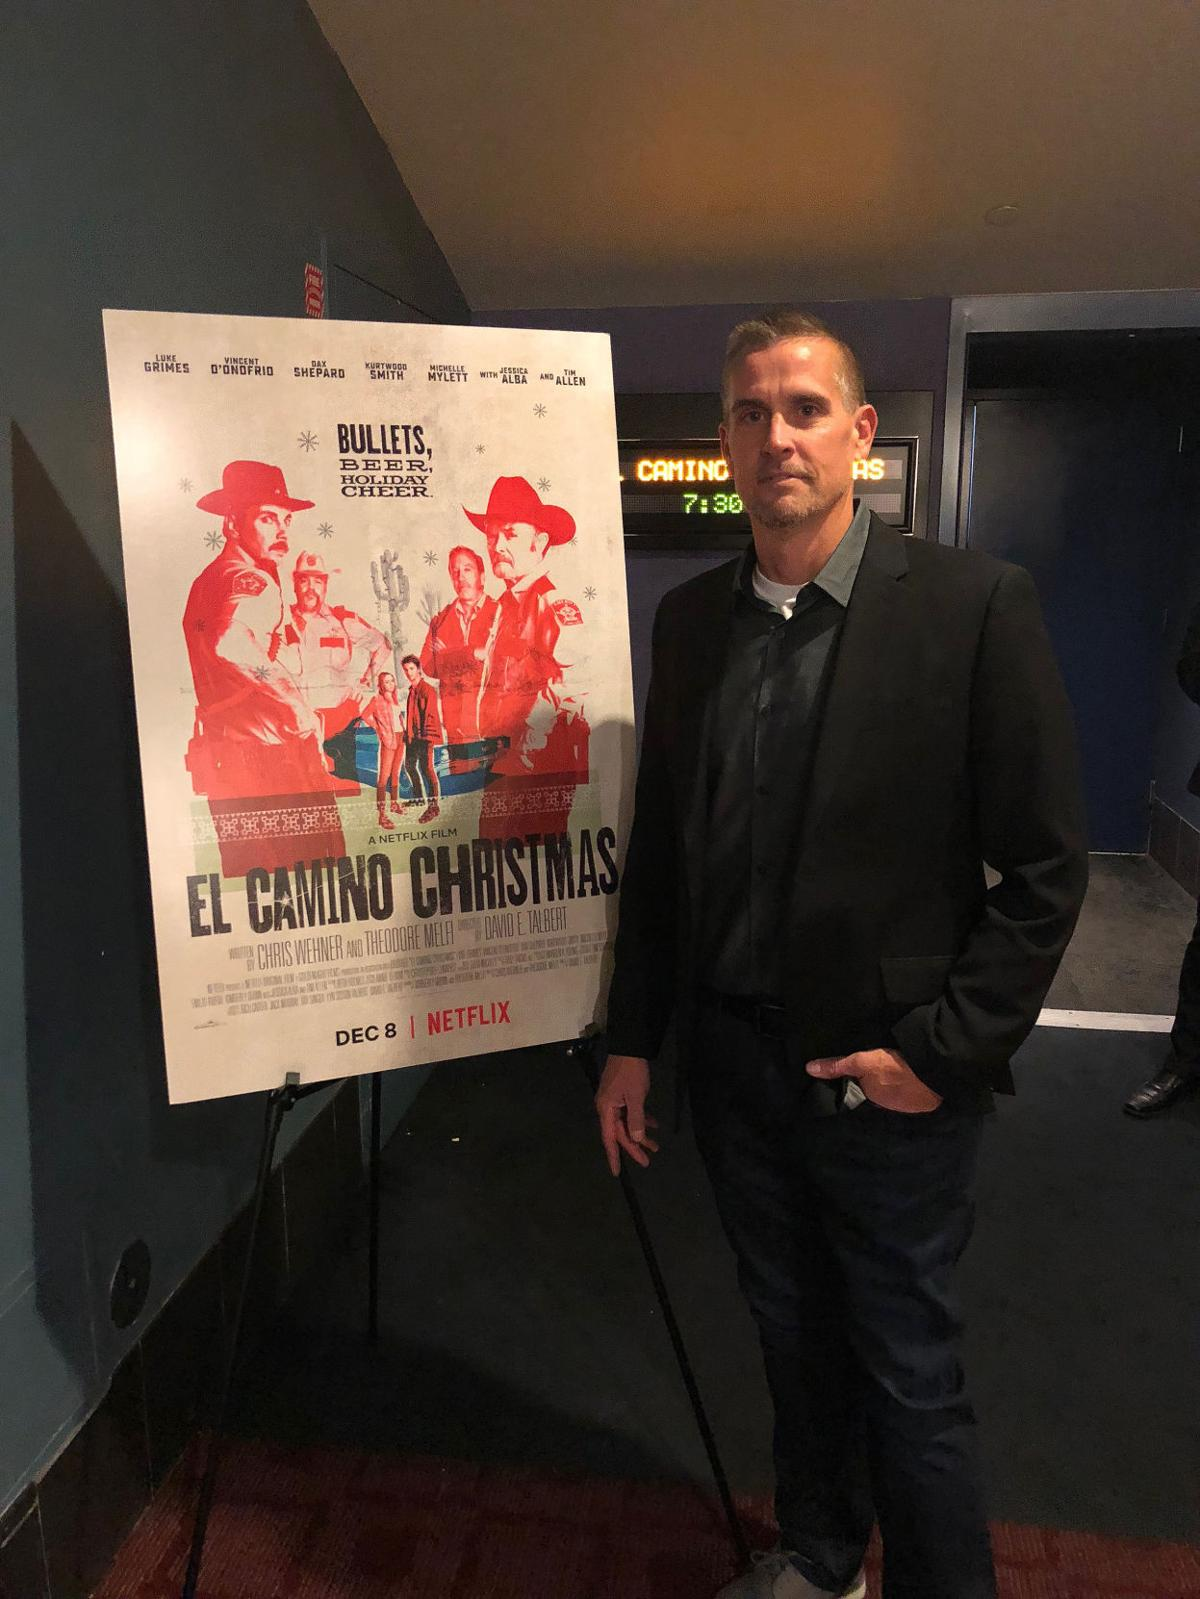 Dream to screen: 'El Camino Christmas' written in GJ, released by Netflix